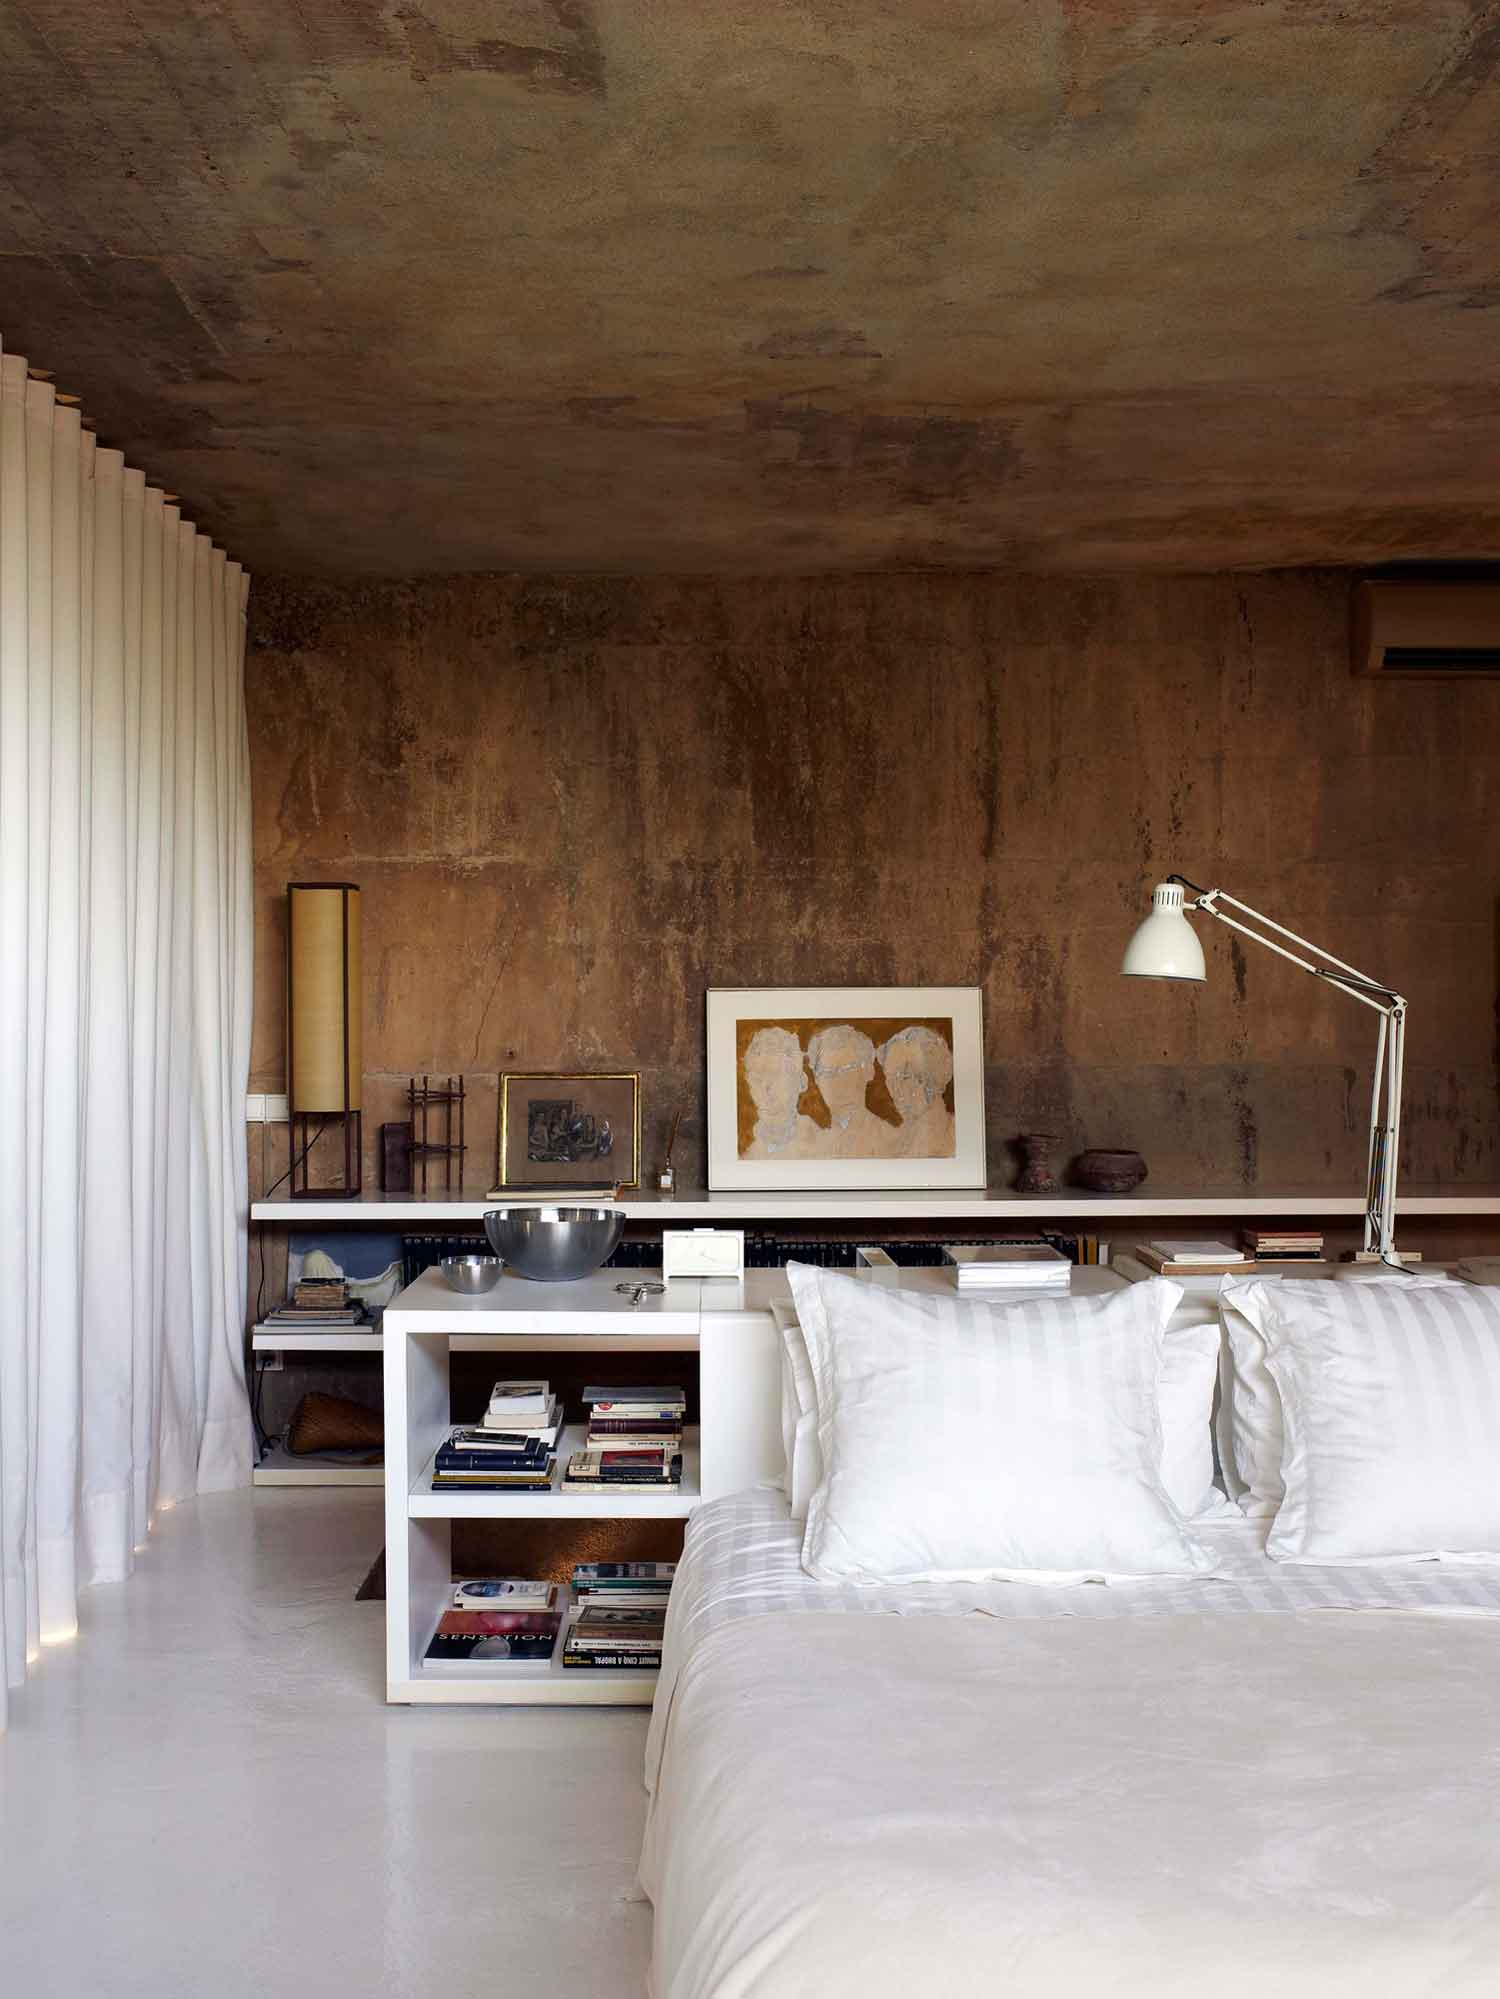 Ricardo Bofill's Epic Home Within an Old Cement Factory in Spain | Yellowtrace